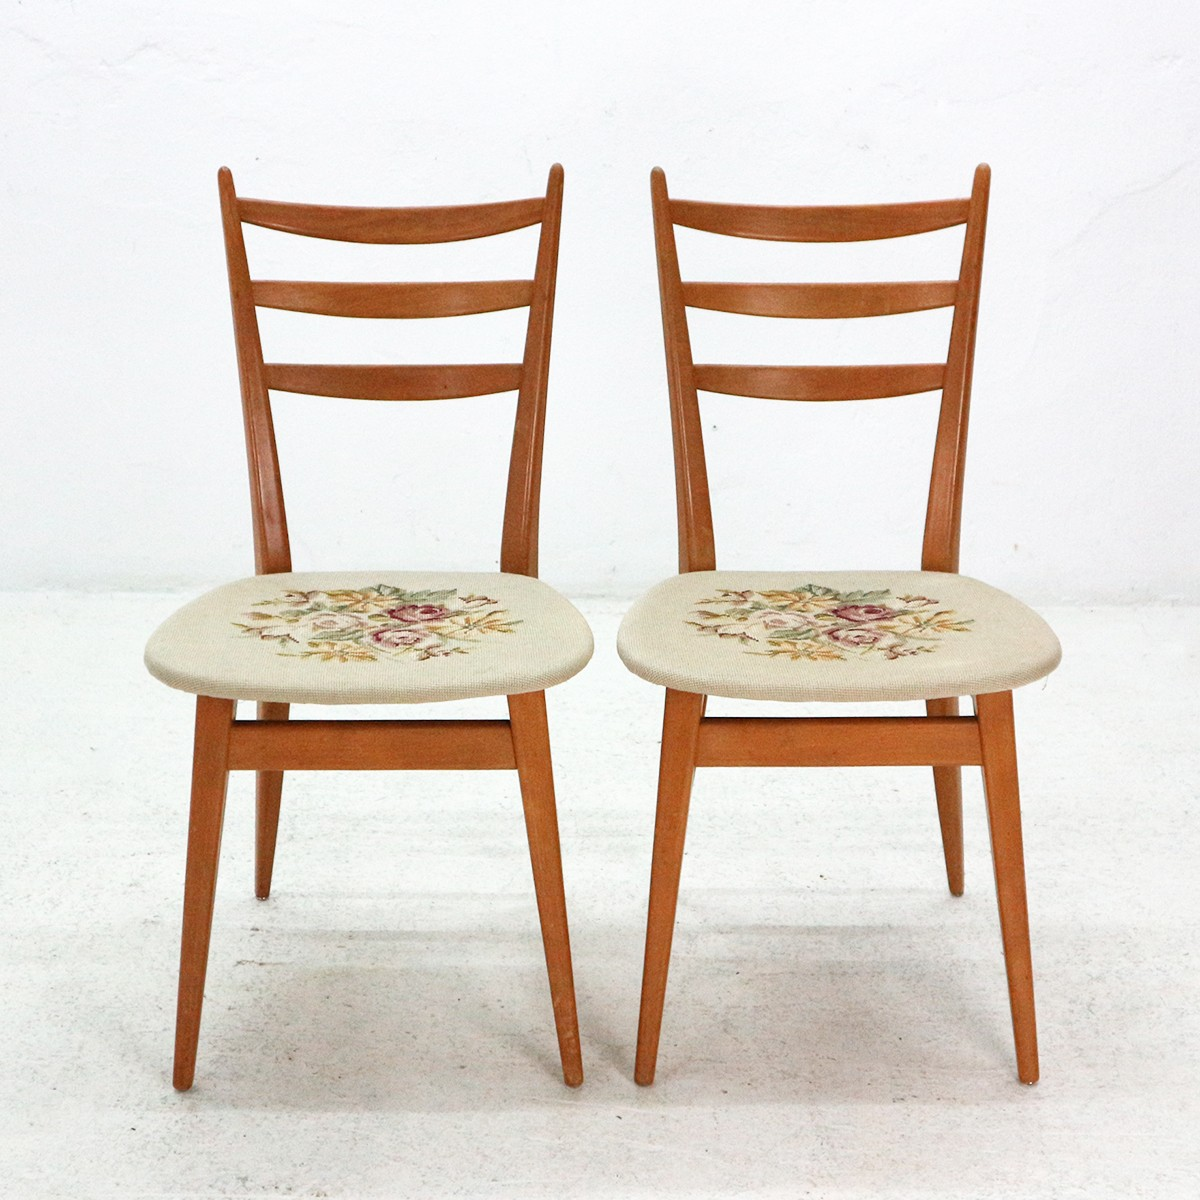 Vintage set of 2 dining chairs in beechwood with floral pattern 1950s